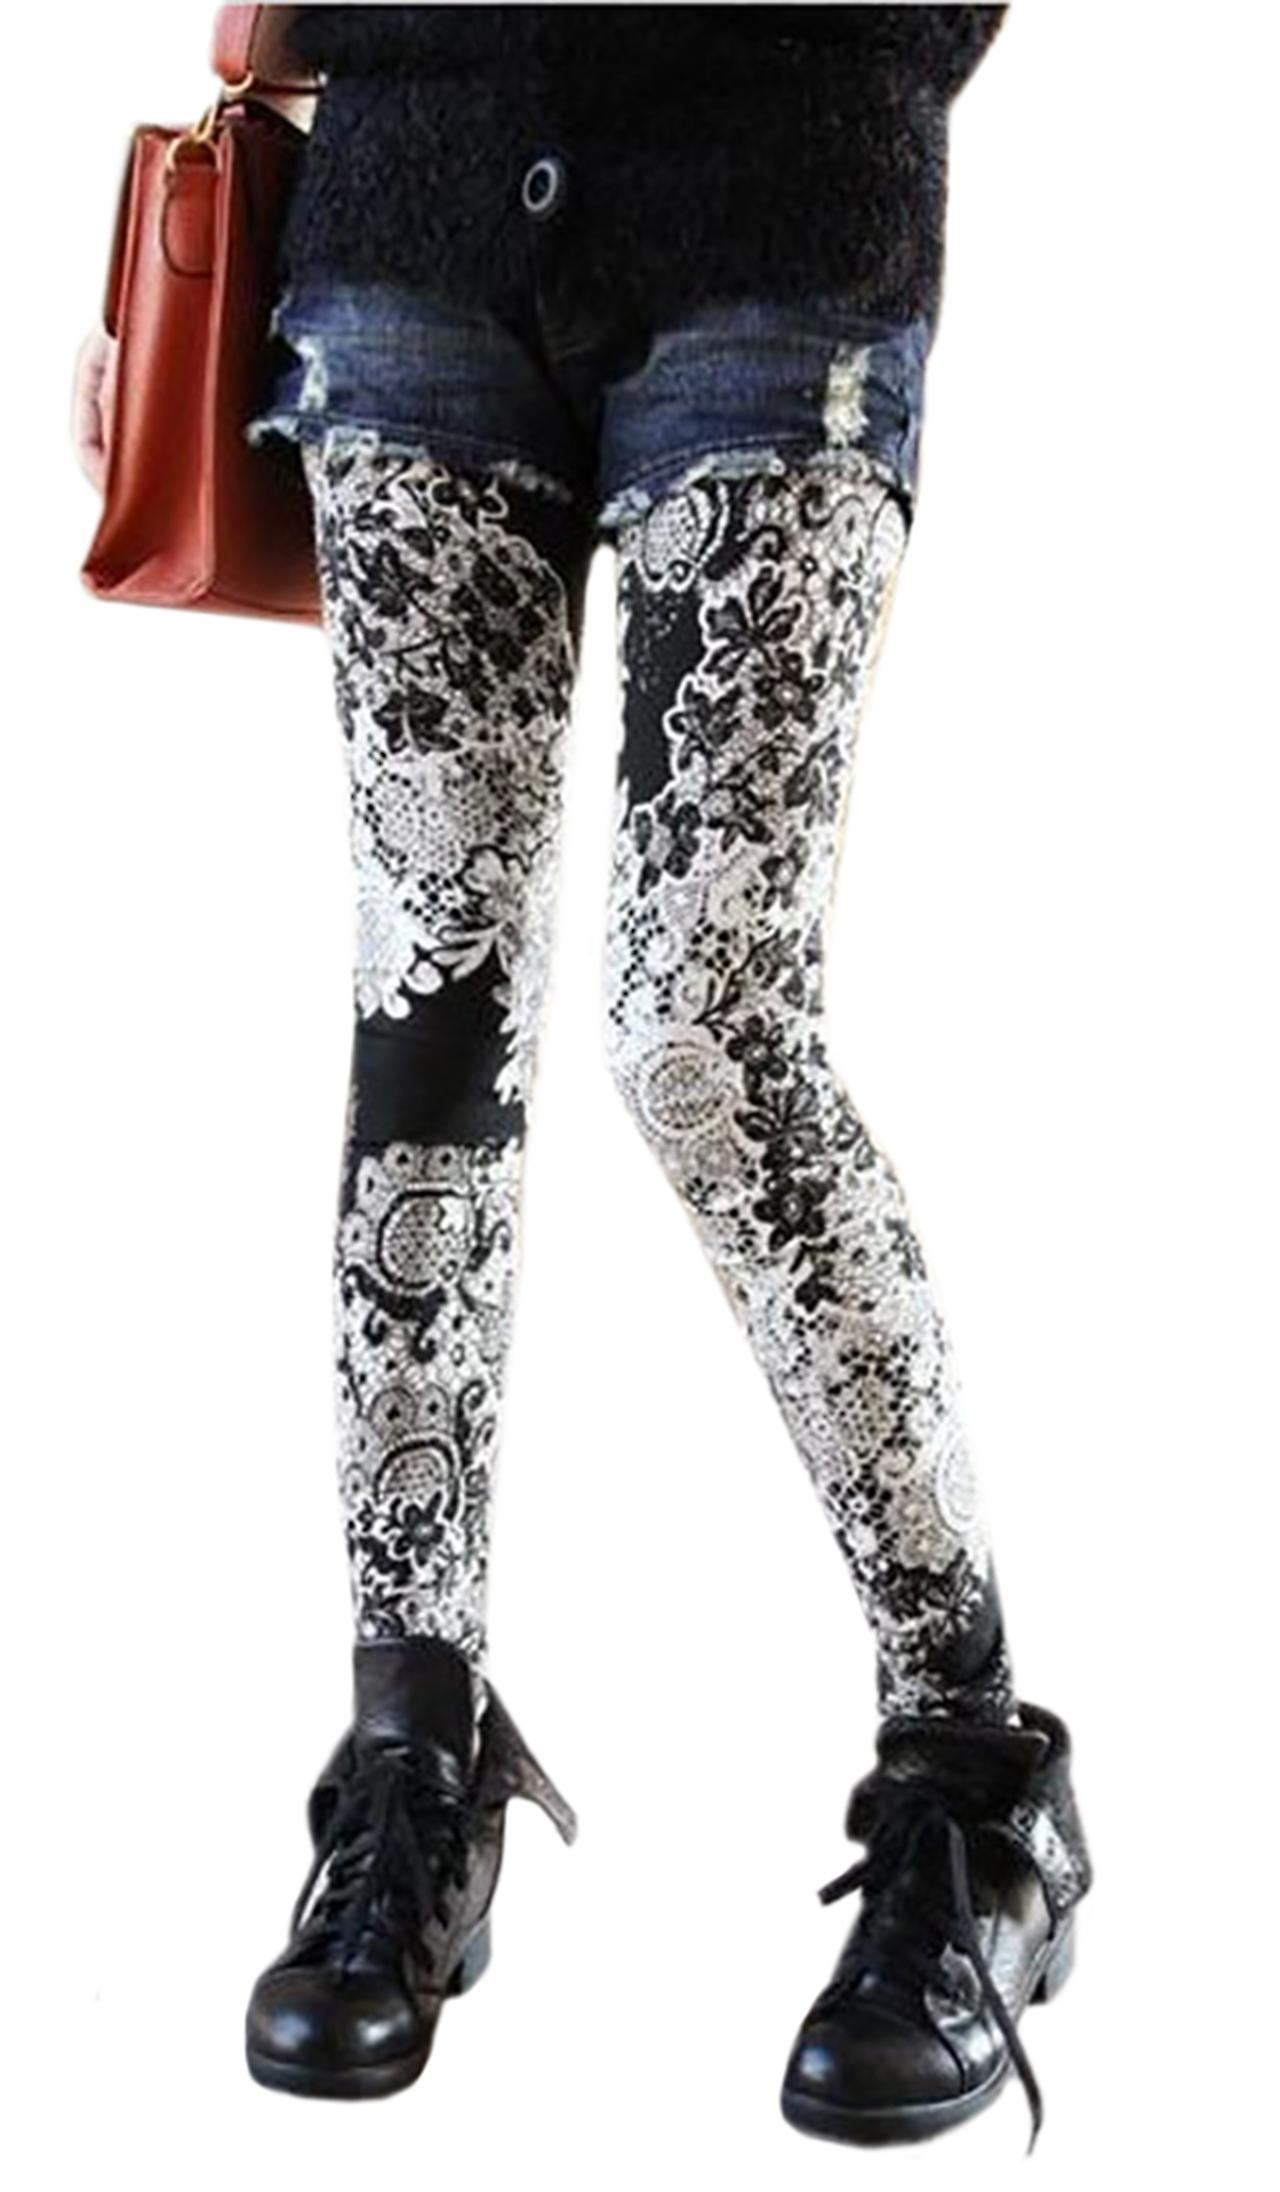 Waooh - Legging lace pattern Ioth